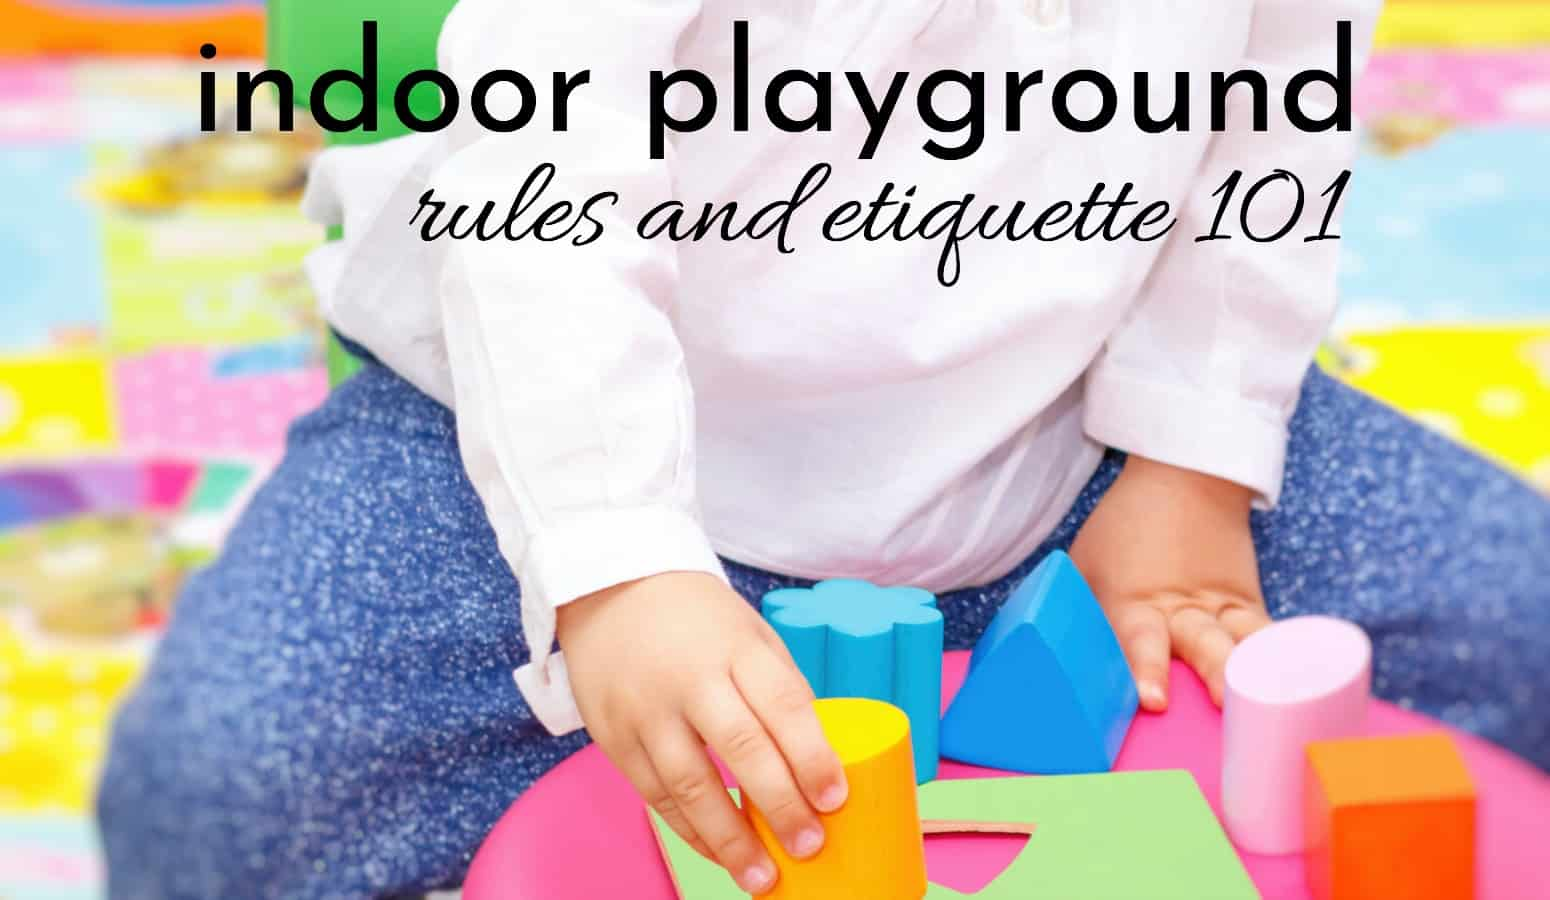 little girl following indoor play area rules and etiquette while playing with colorful blocks on the floor